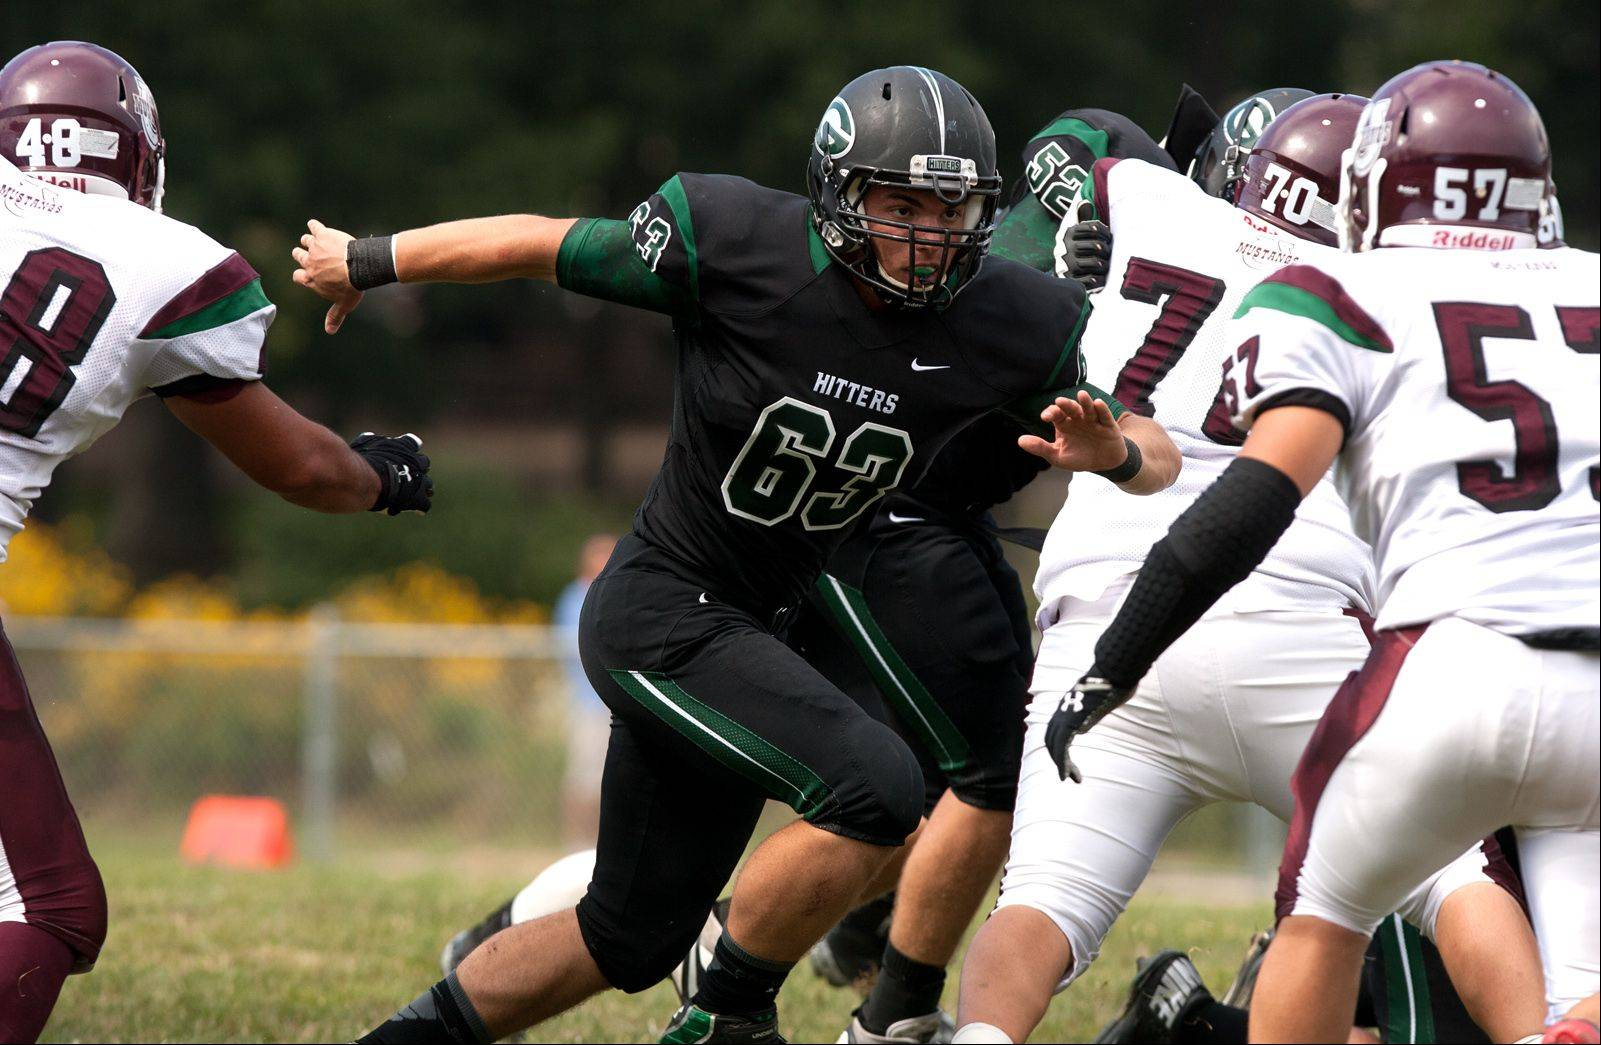 Daniel White/dwhite@dailyherald.com � Week-2- Photos from the Morton at Glenbard West football game on Saturday, Sept. 7.